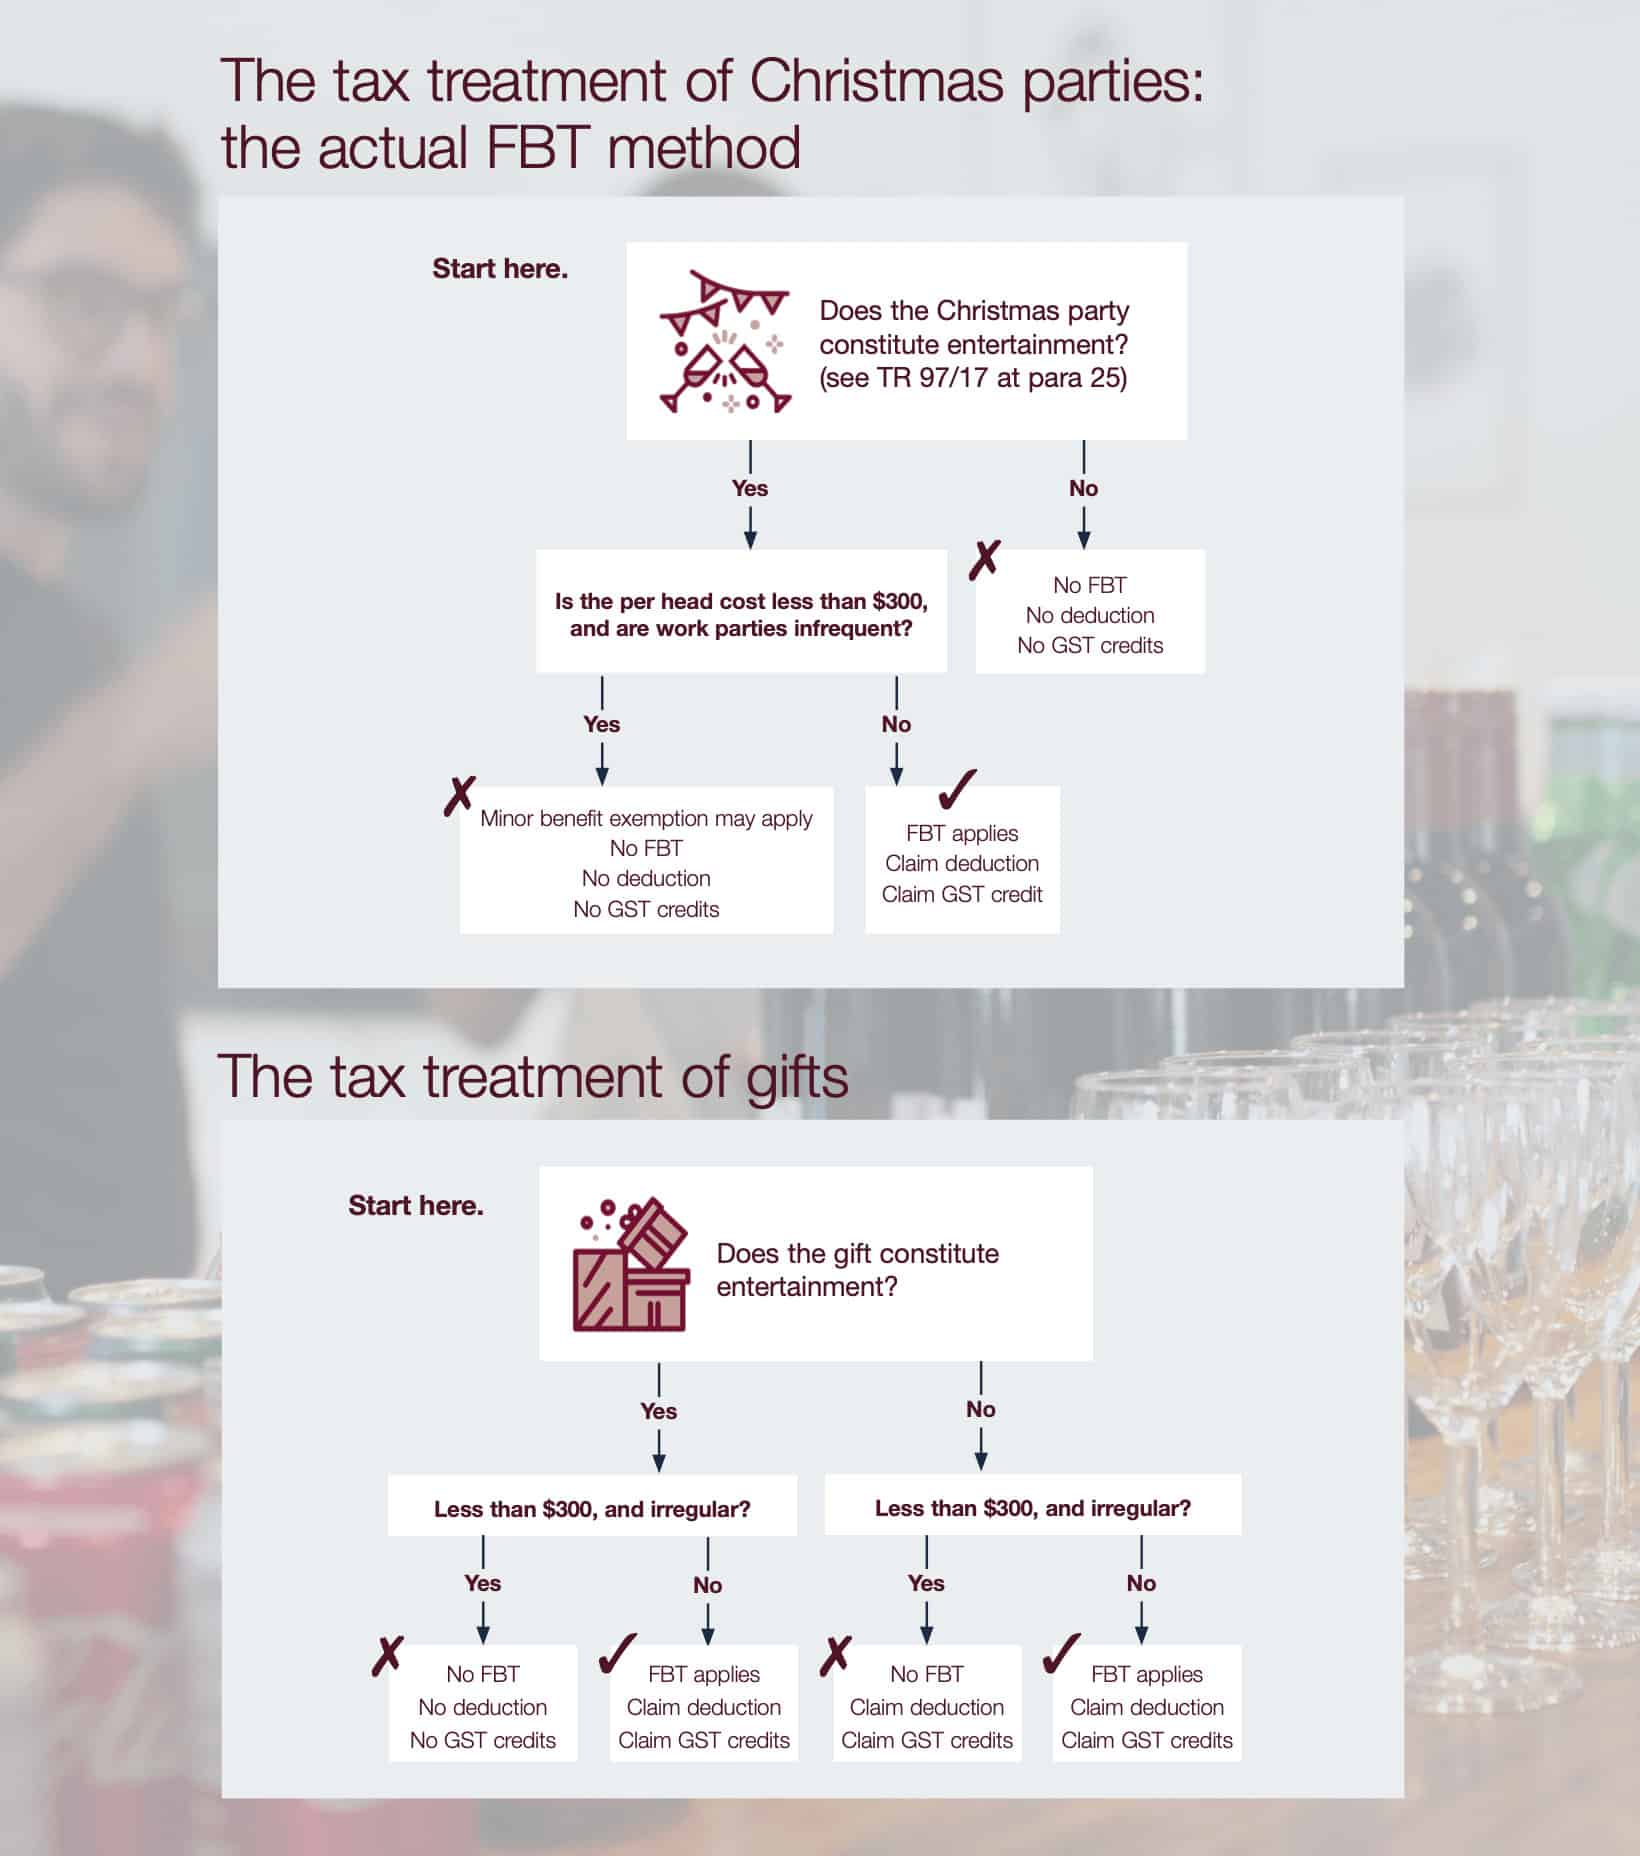 The tax treatment of Christmas parties